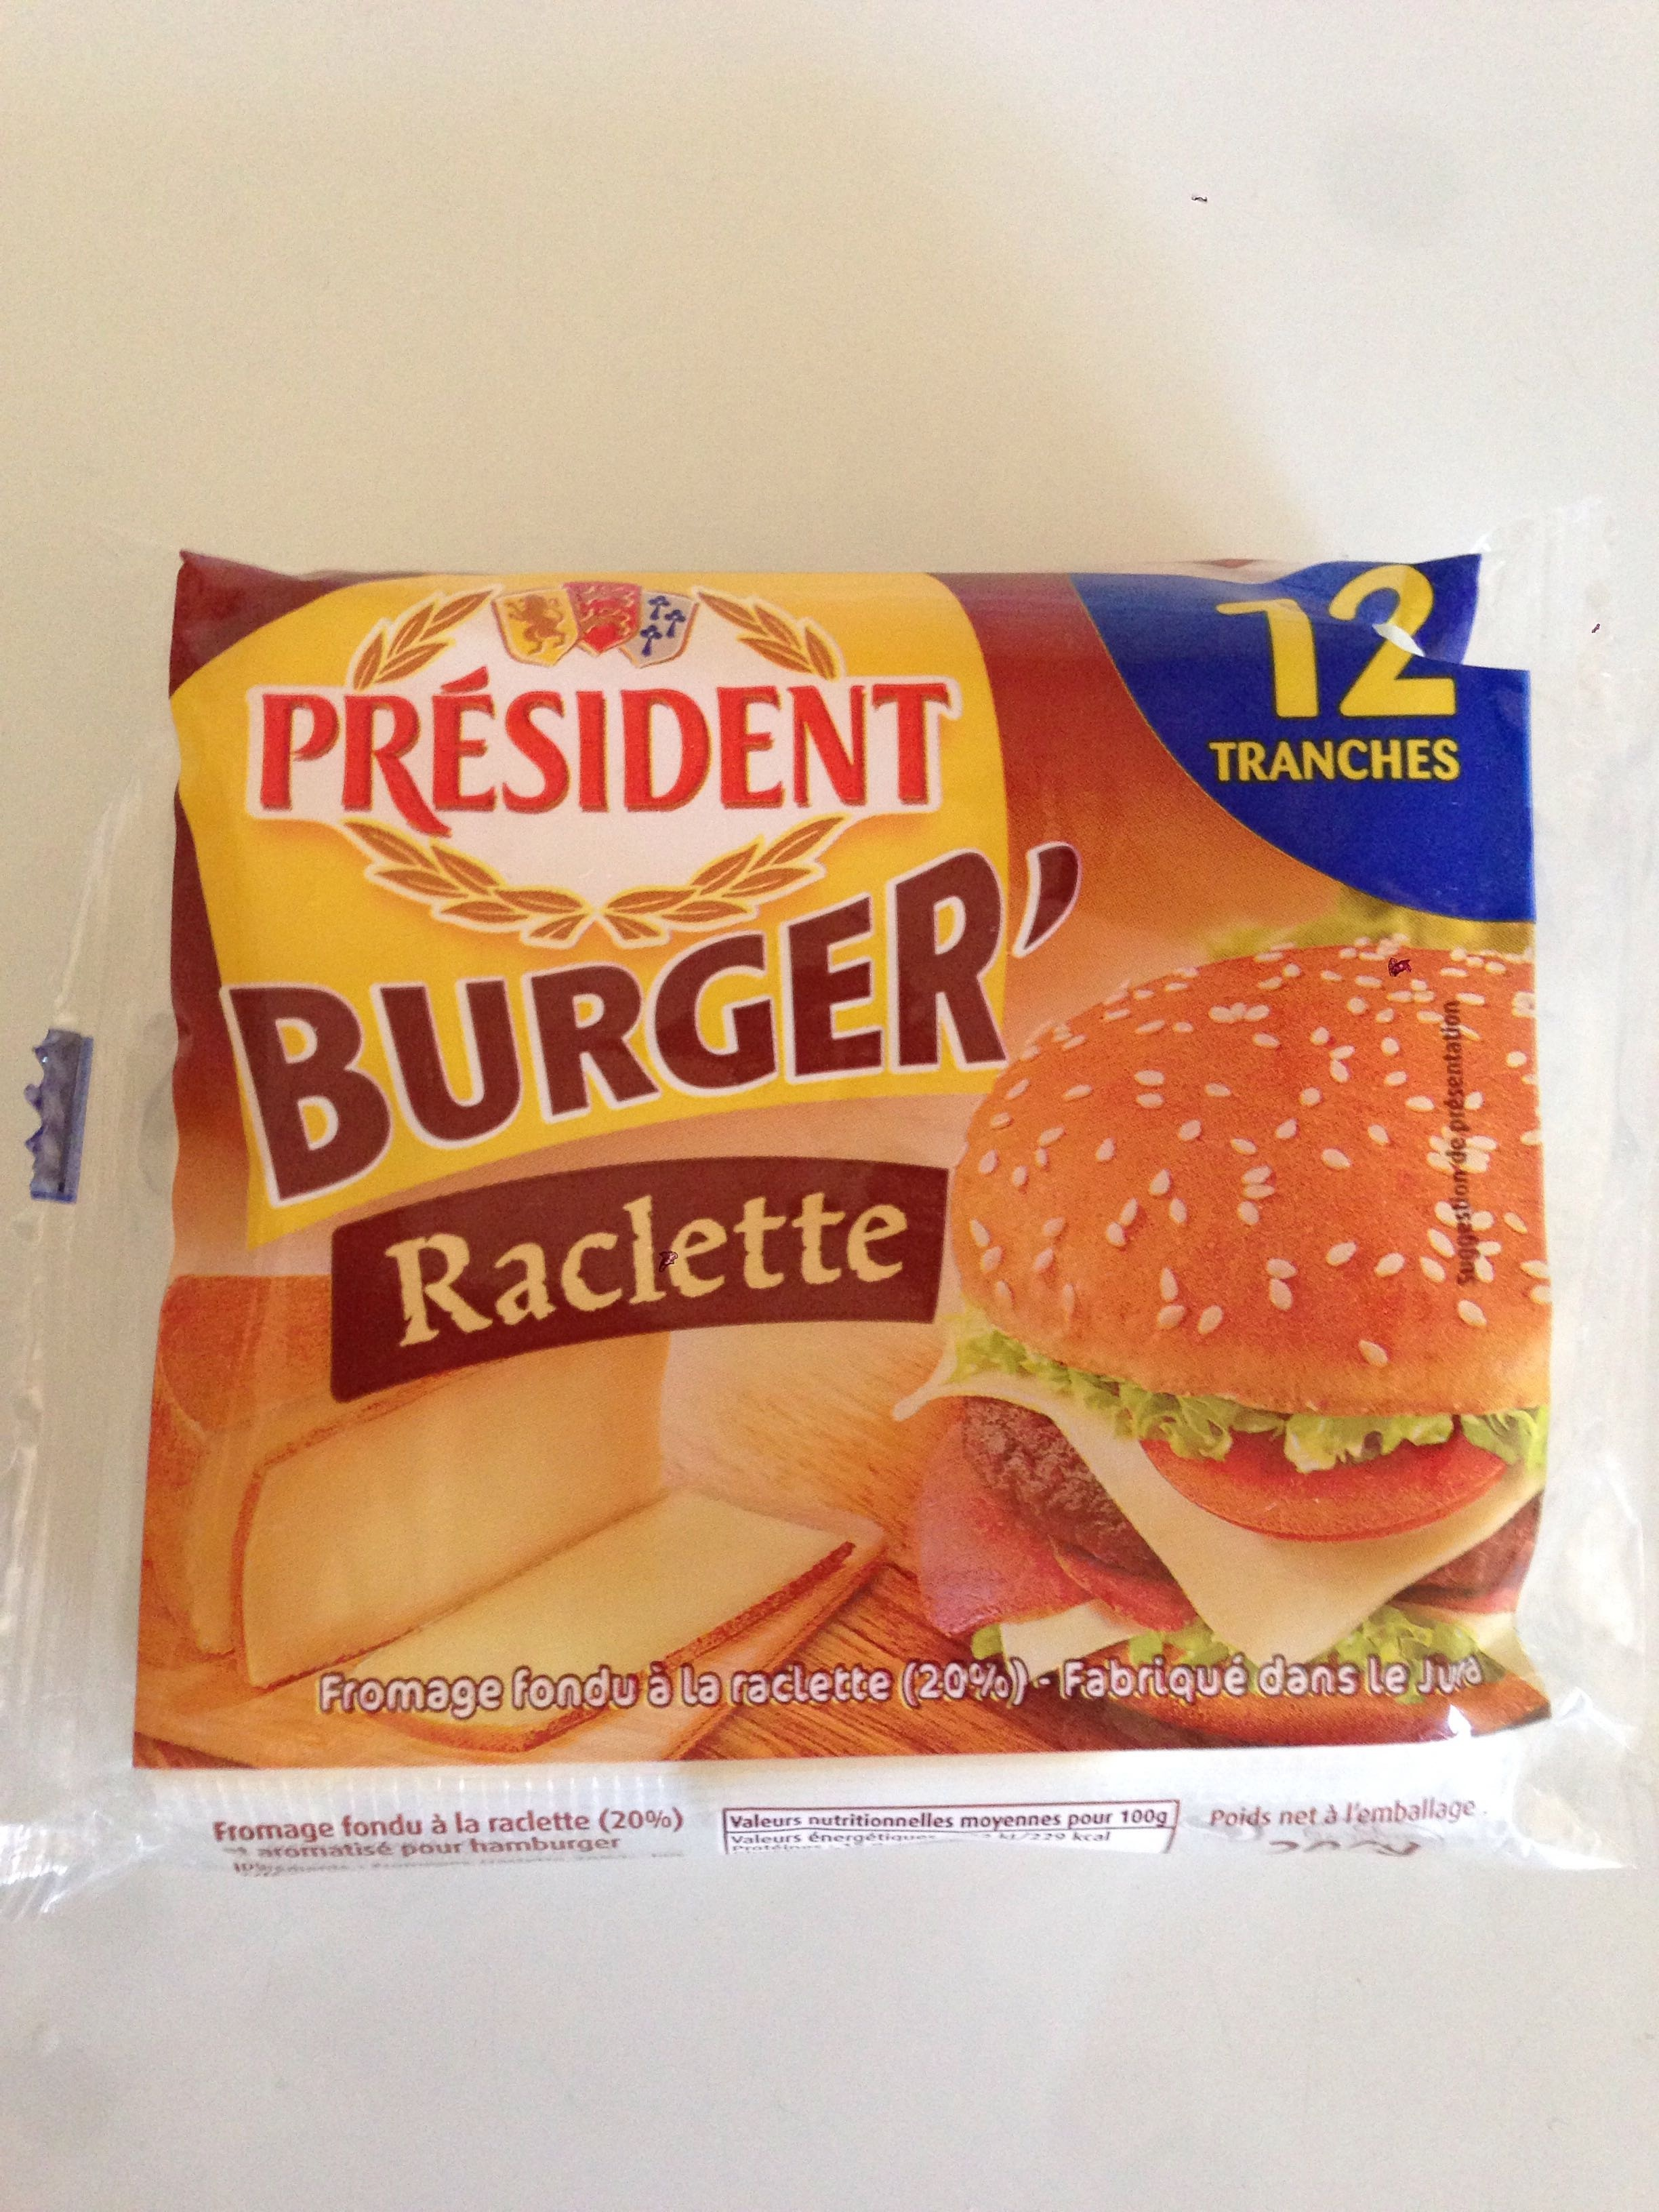 Burger' Raclette 12 Tranches (17 % MG) - Product - fr